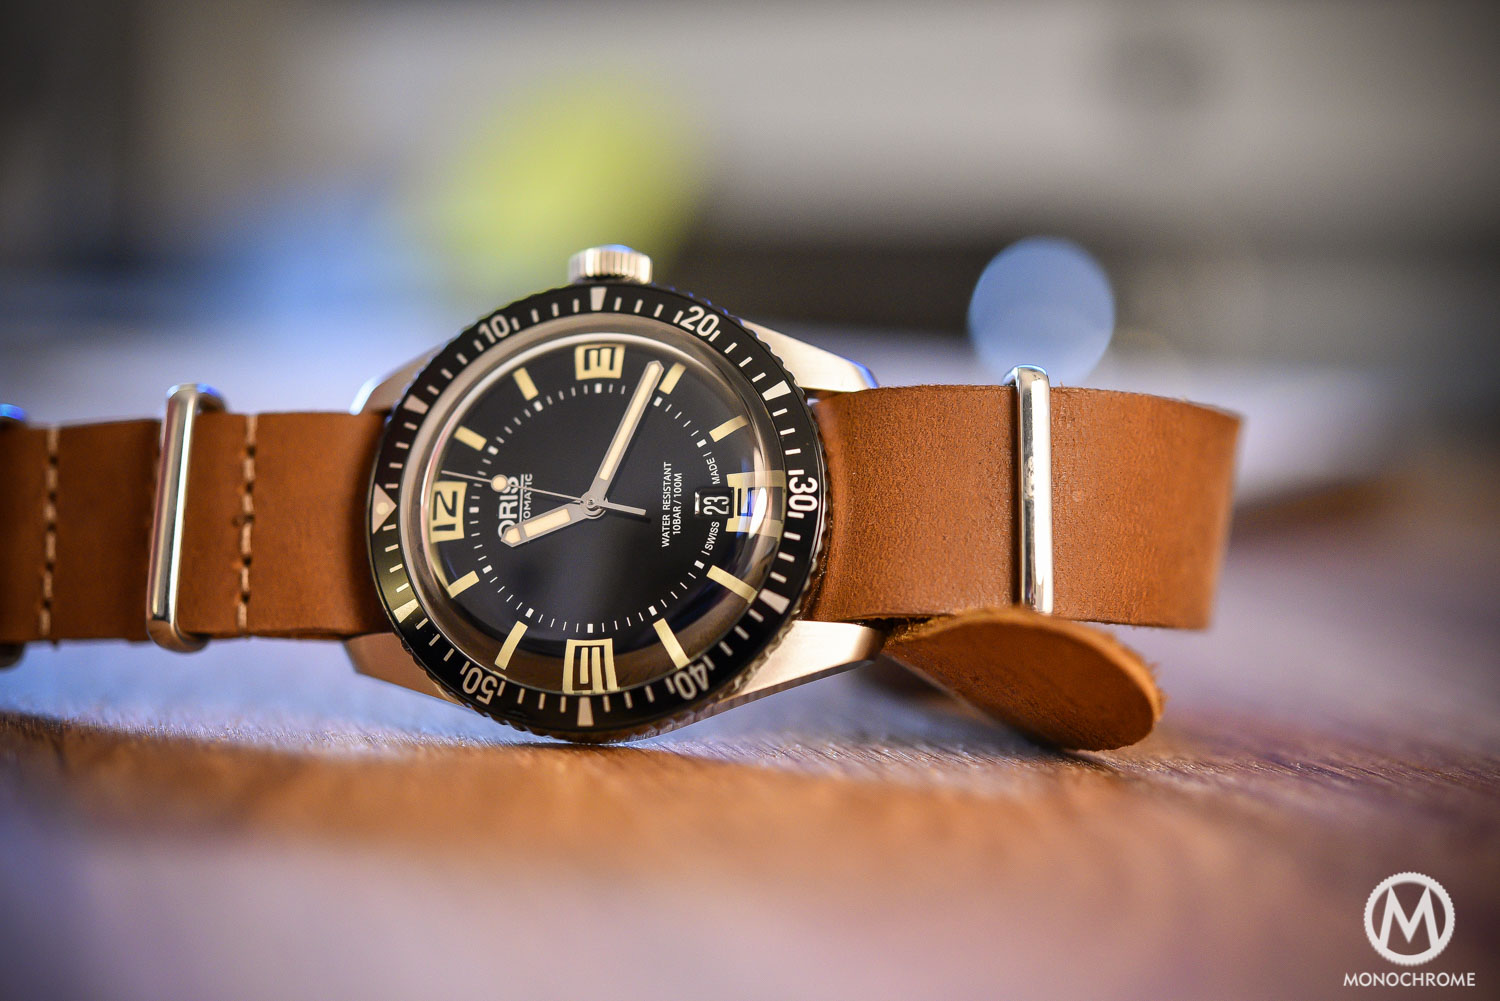 The Collector's Series - Why the Oris Divers Sixty Five is such a cool watch for our Managing Editor? - Monochrome Watches